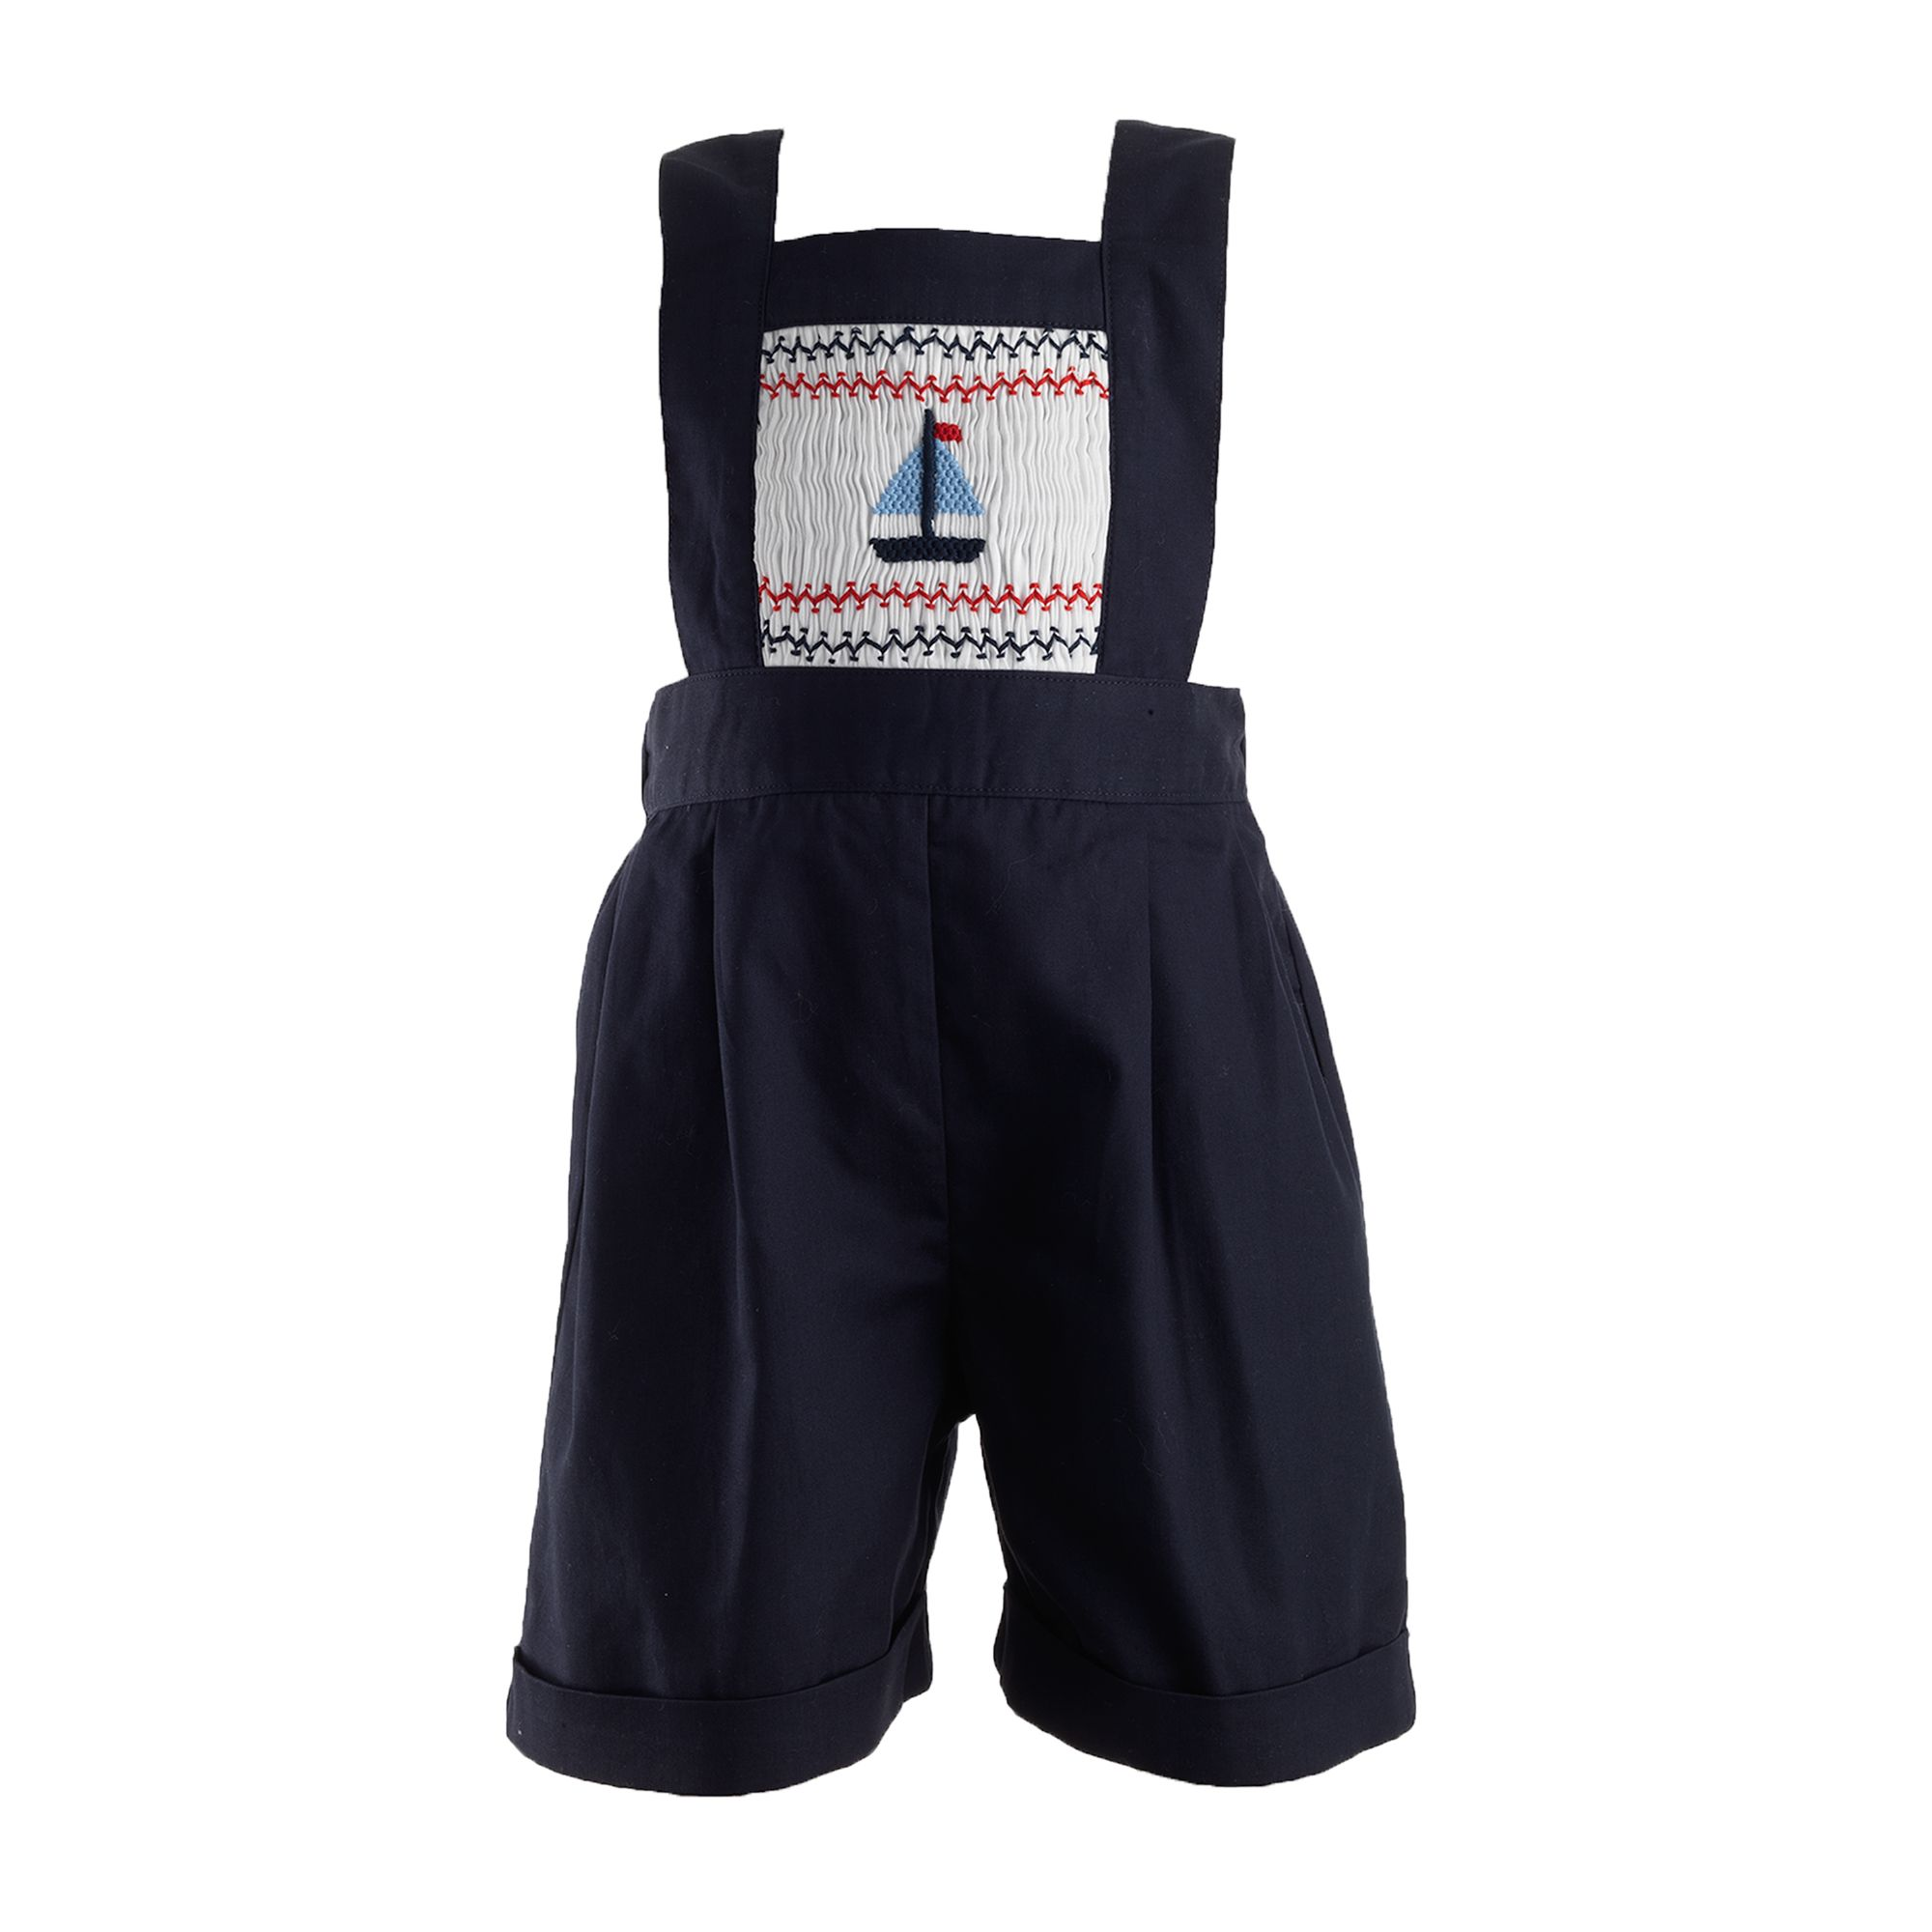 fc3773c09 The infamous Sailor boat dungarees by Rachel Riley, worn by Prince George  on the Australian tour last year. I won't lie, i almost wish i had a baby  boy to ...